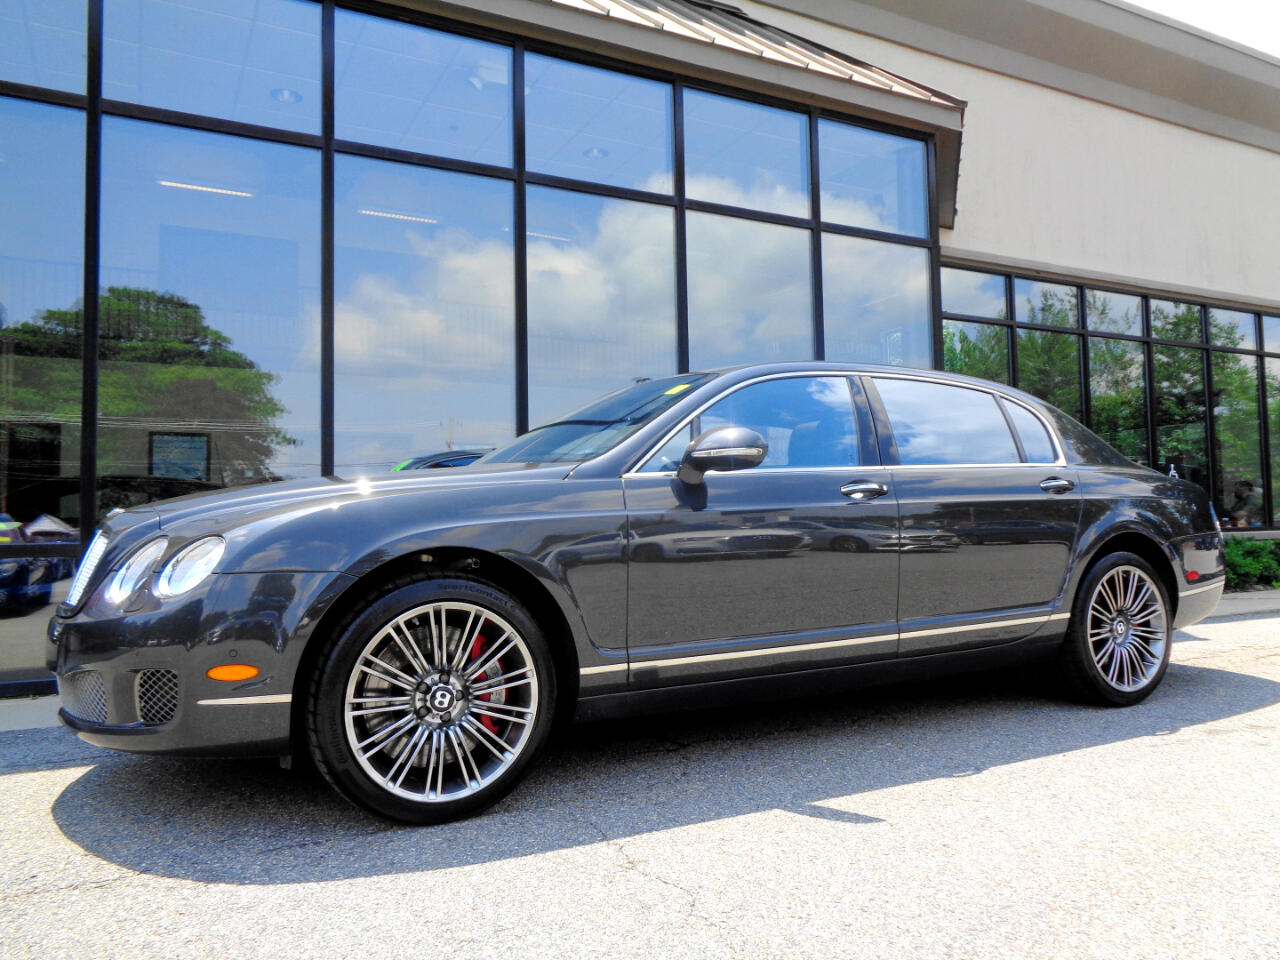 Bentley Continental Flying Spur 4dr Sdn Speed 2011